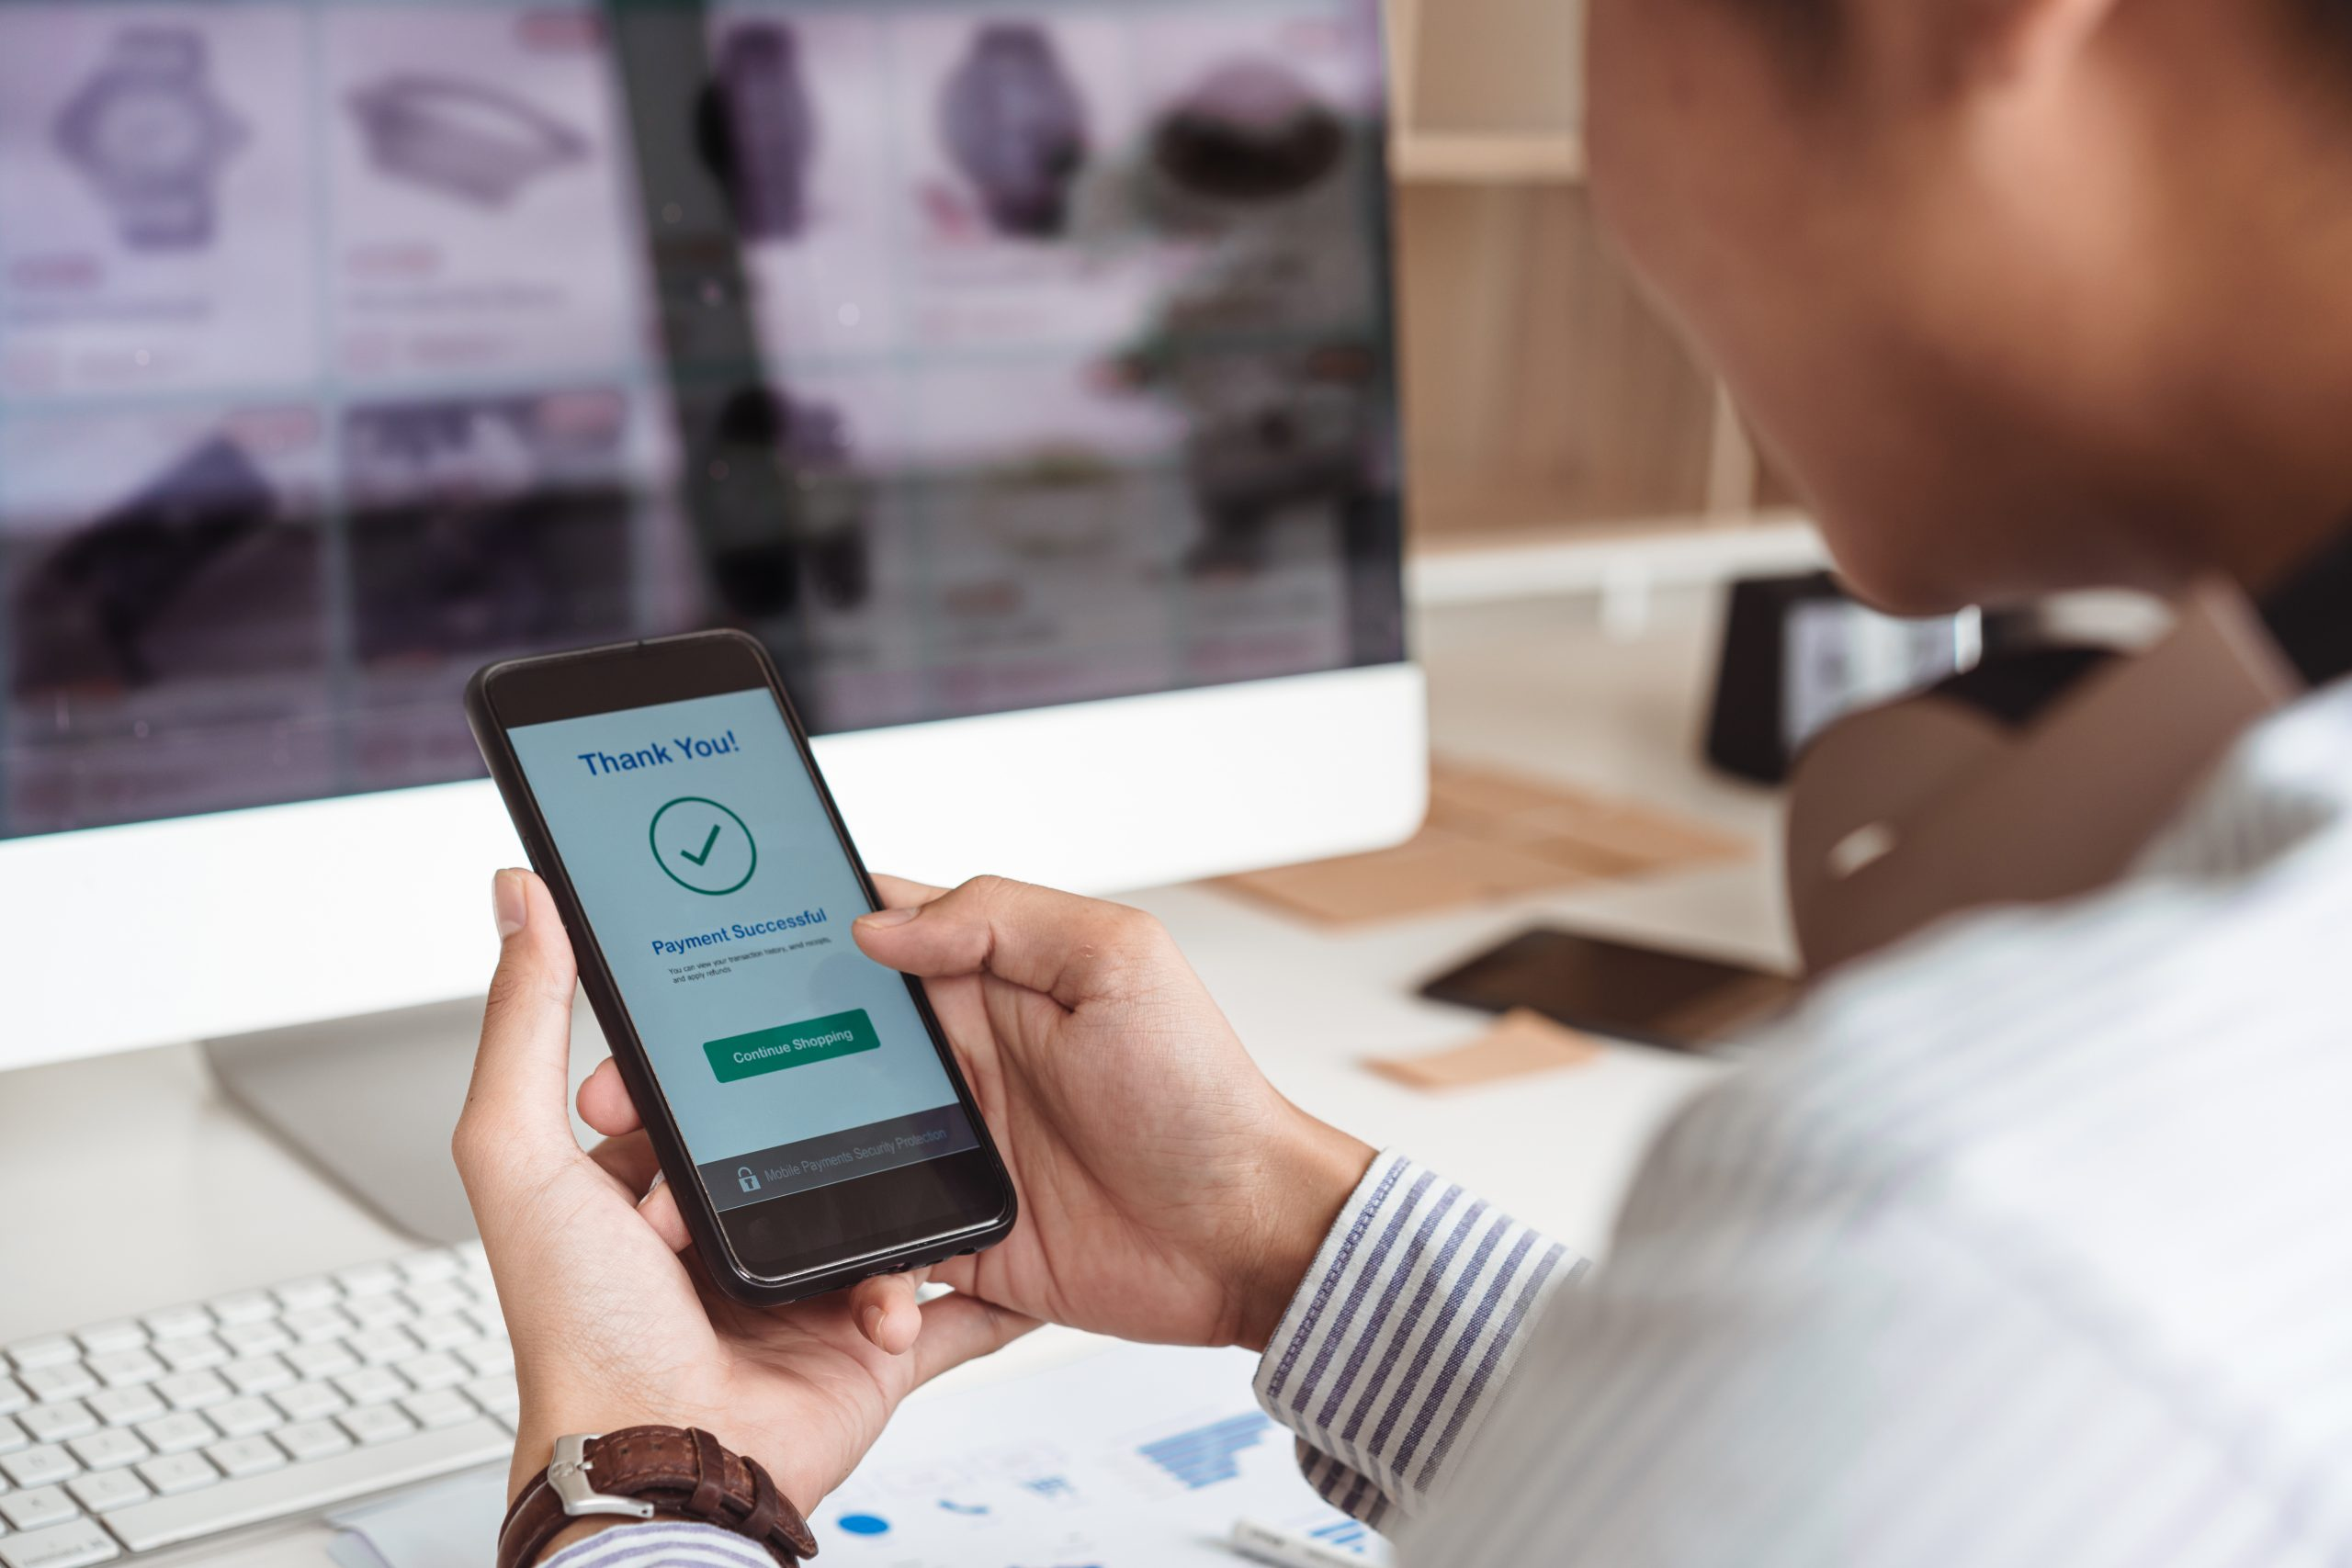 Man's hands holding smartphone and successful online payment. Mobile wallet payment concept.